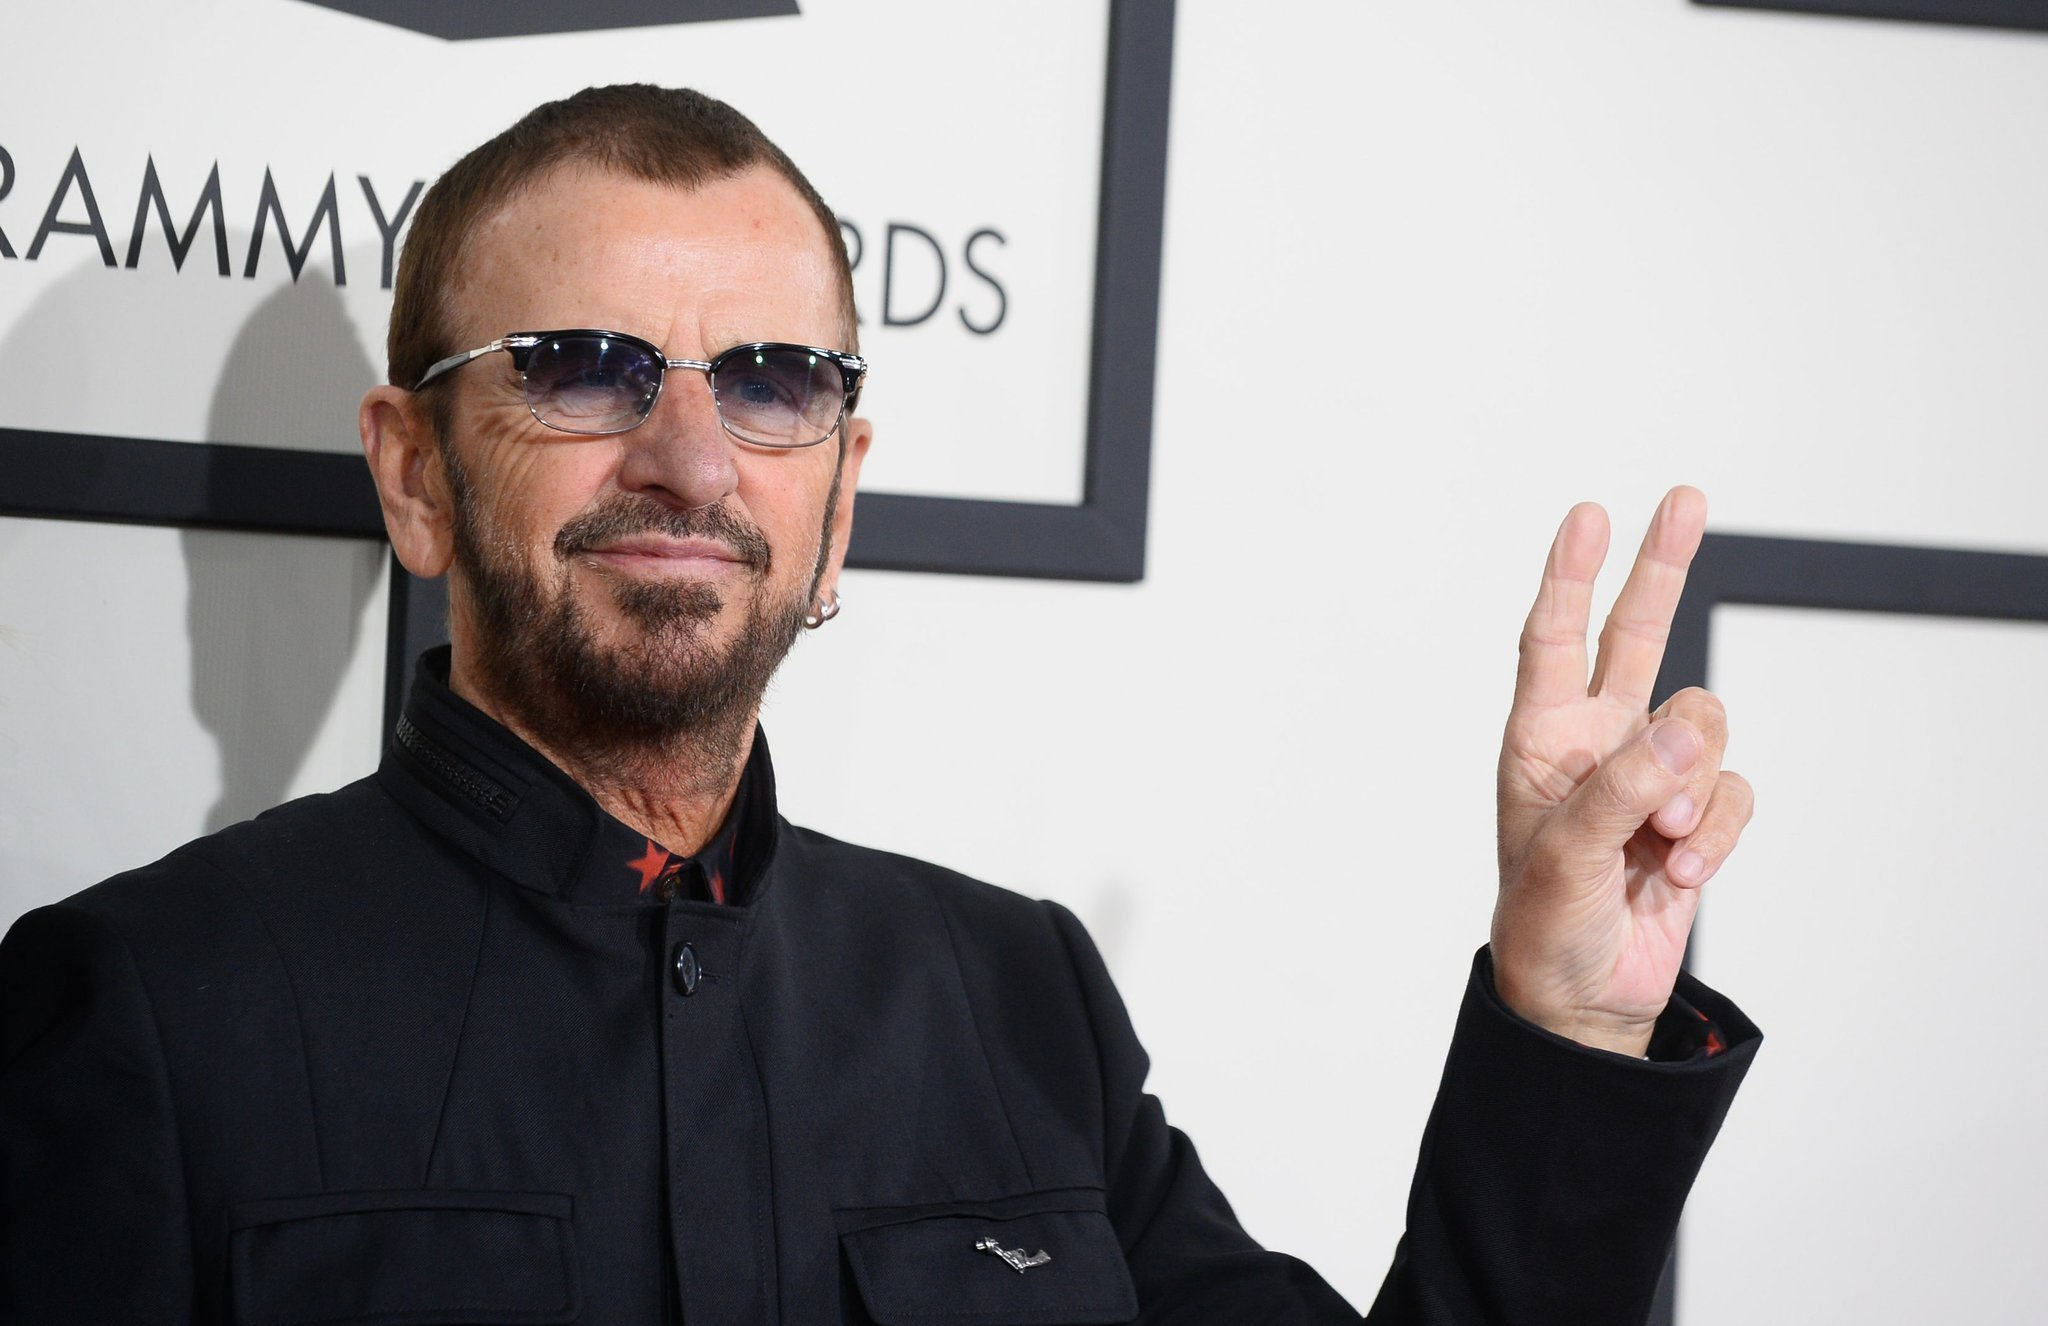 Ringo Starr To Play 2015 Concert At Pala Casino In San Diego County